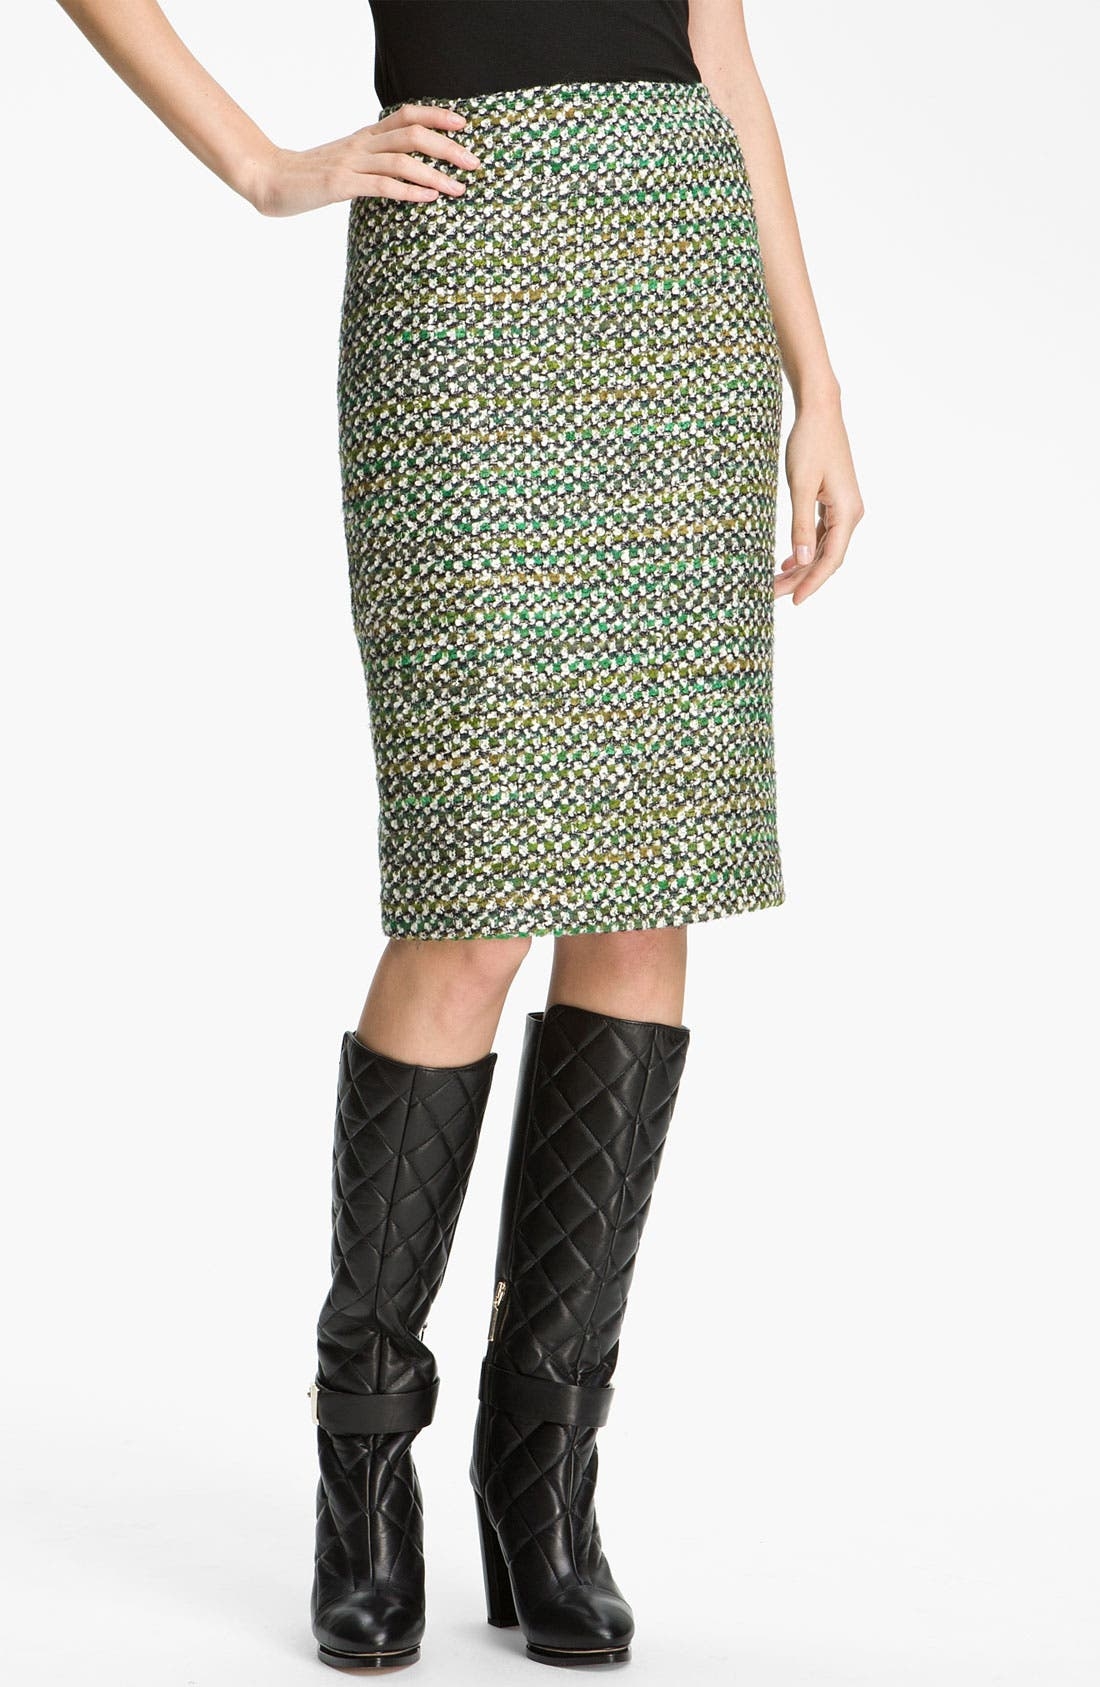 Alternate Image 1 Selected - Lafayette 148 New York 'Hierarchy' Tweed Skirt